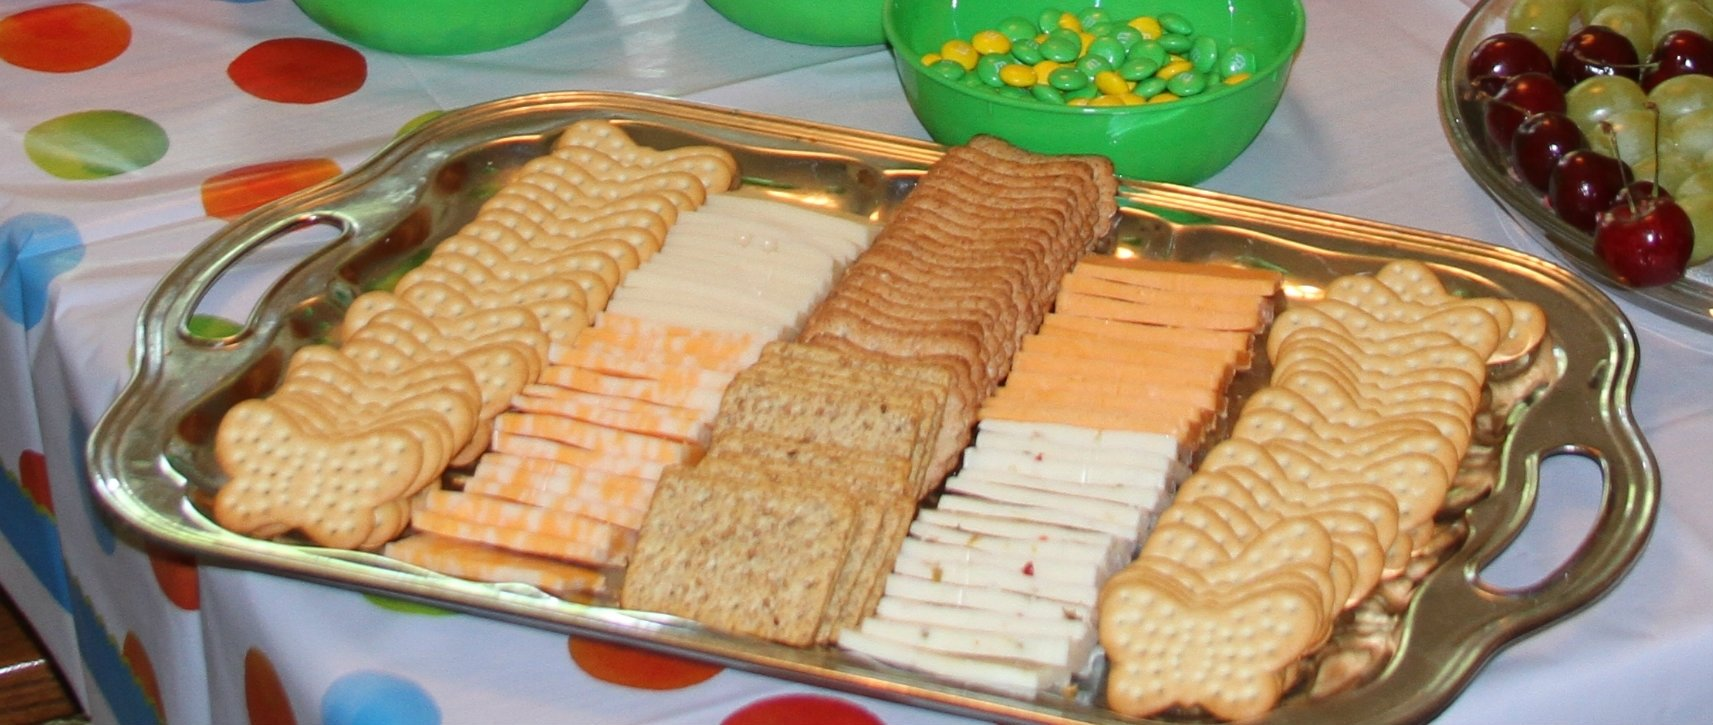 10 Fantastic Cheese And Cracker Tray Ideas very hungry caterpillar birthday party food ideas butterfly 1